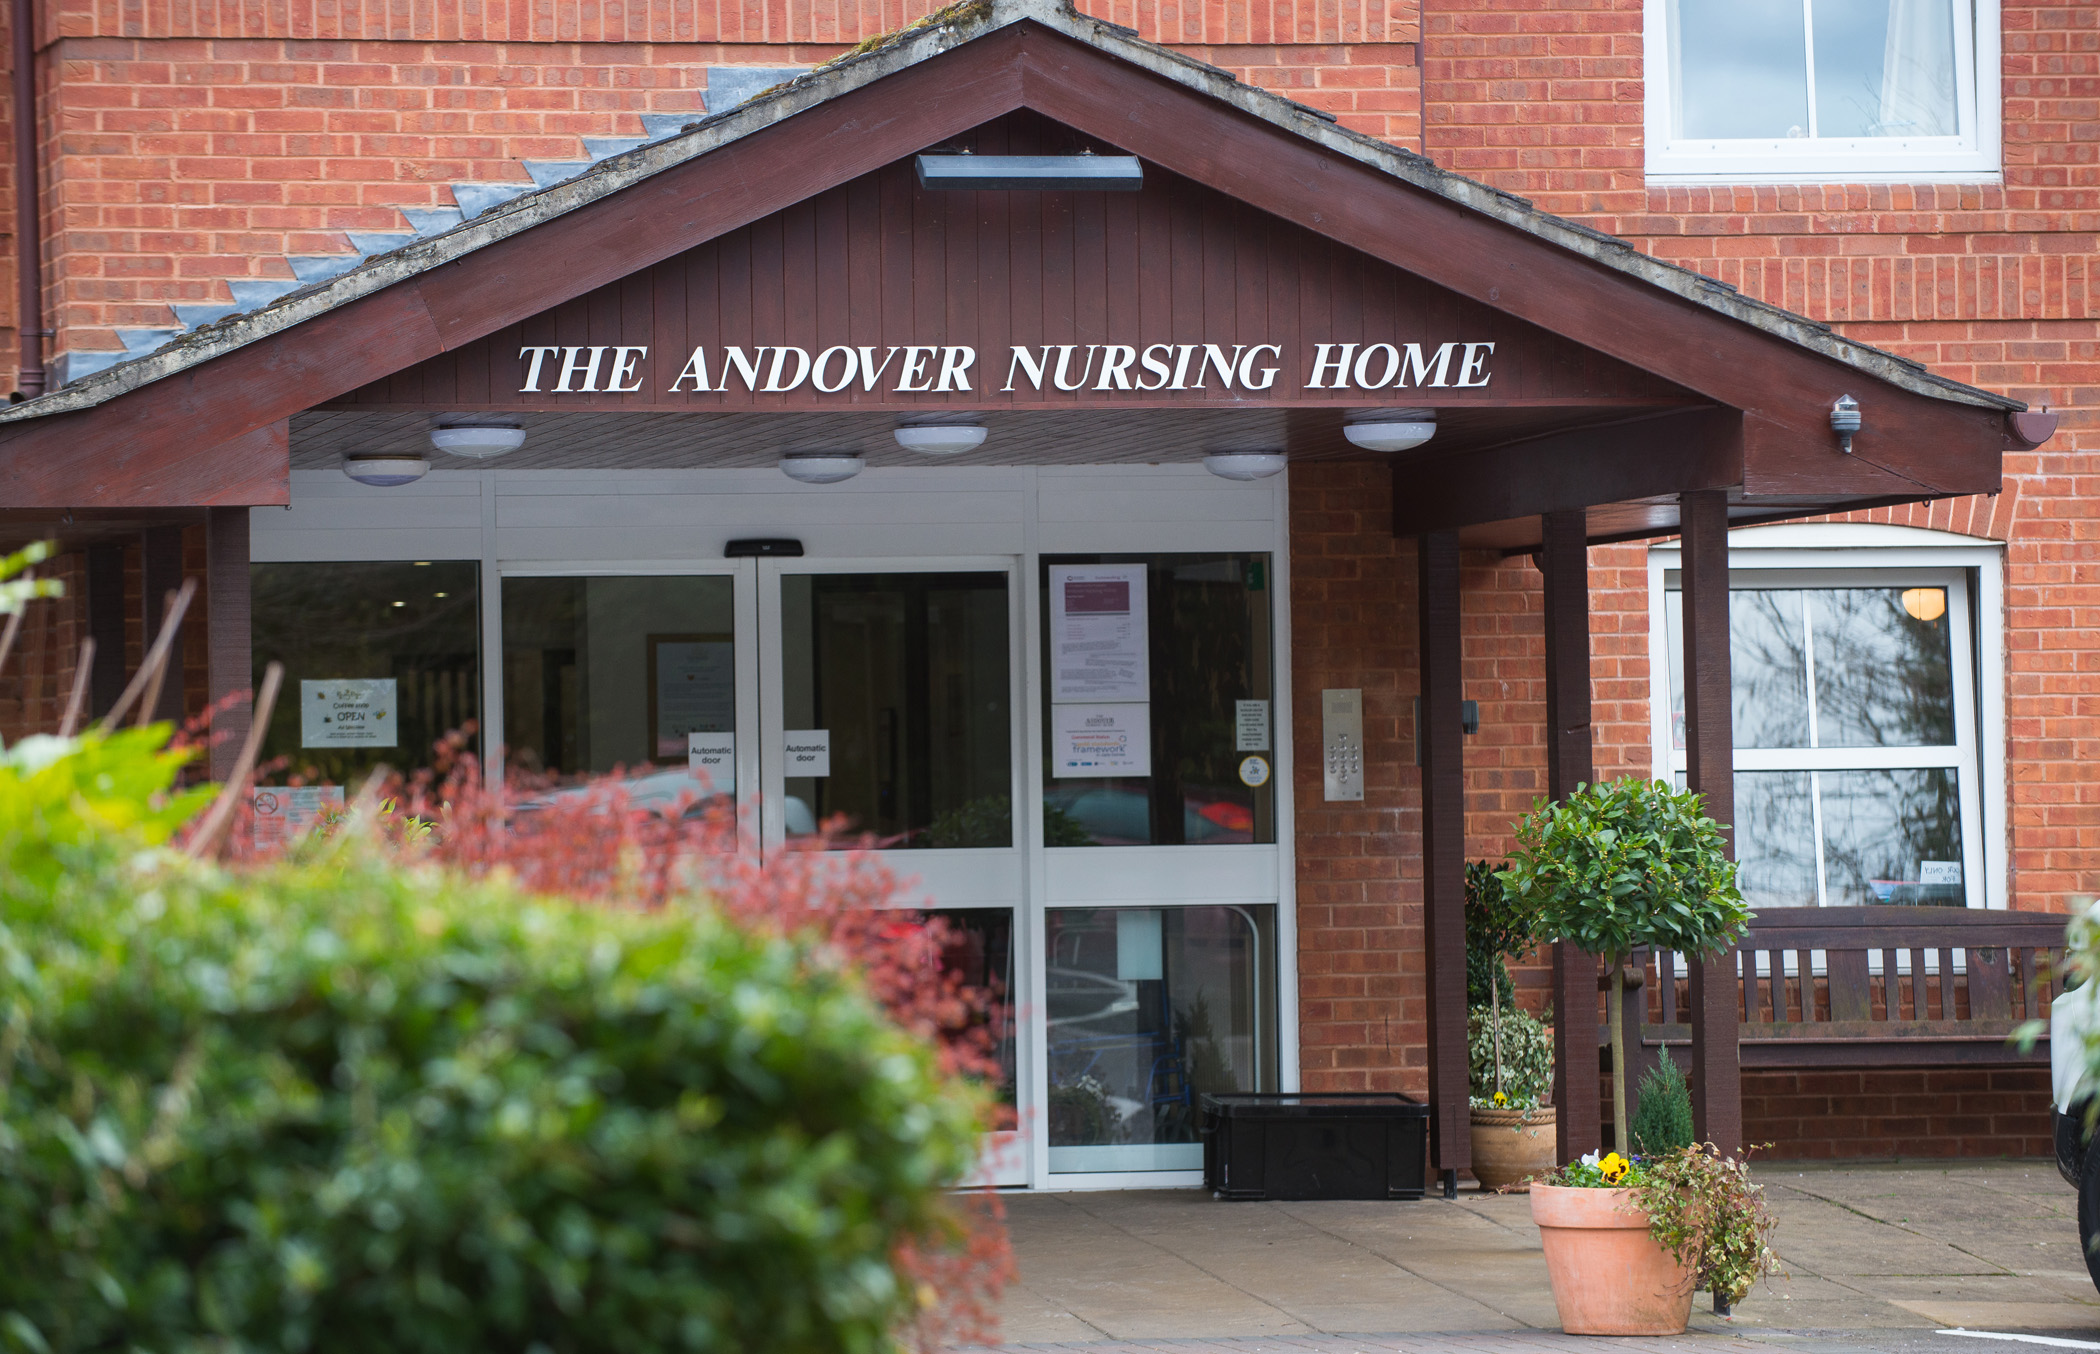 Local News | Outstanding nursing home recognised for end of life care | Andover & Villages